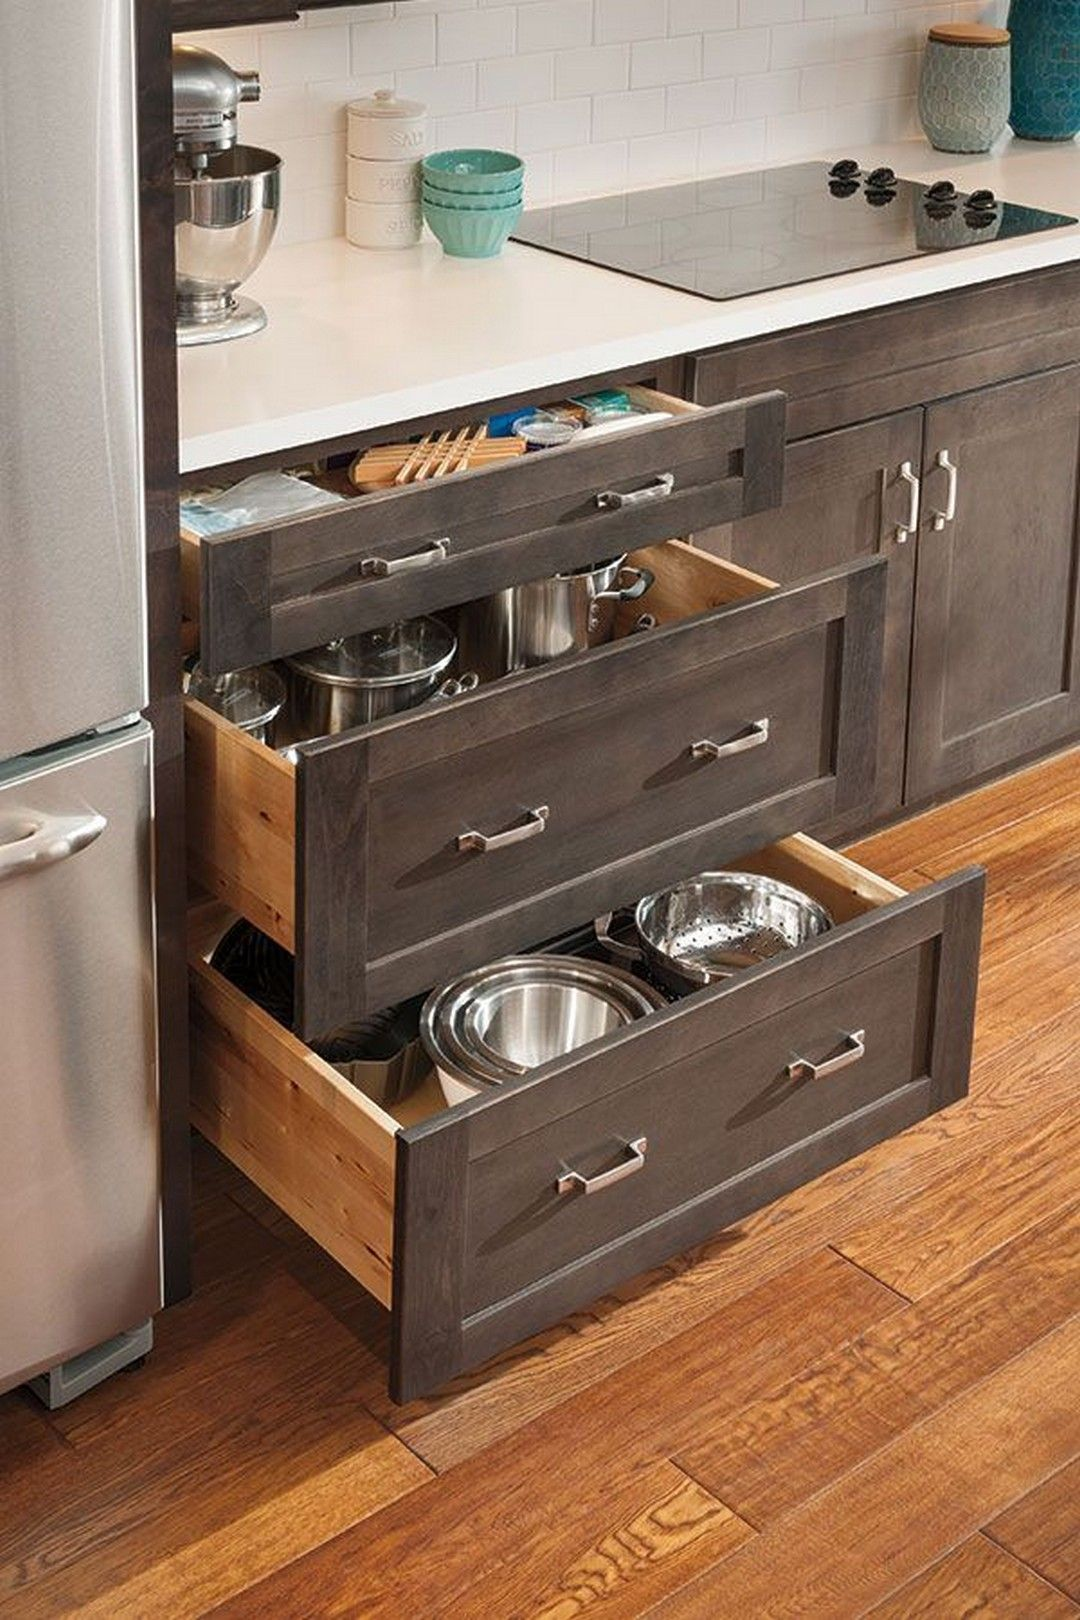 A Large Pantry Was A Must-Have For My Kitchen Remodel! #largepantryideas